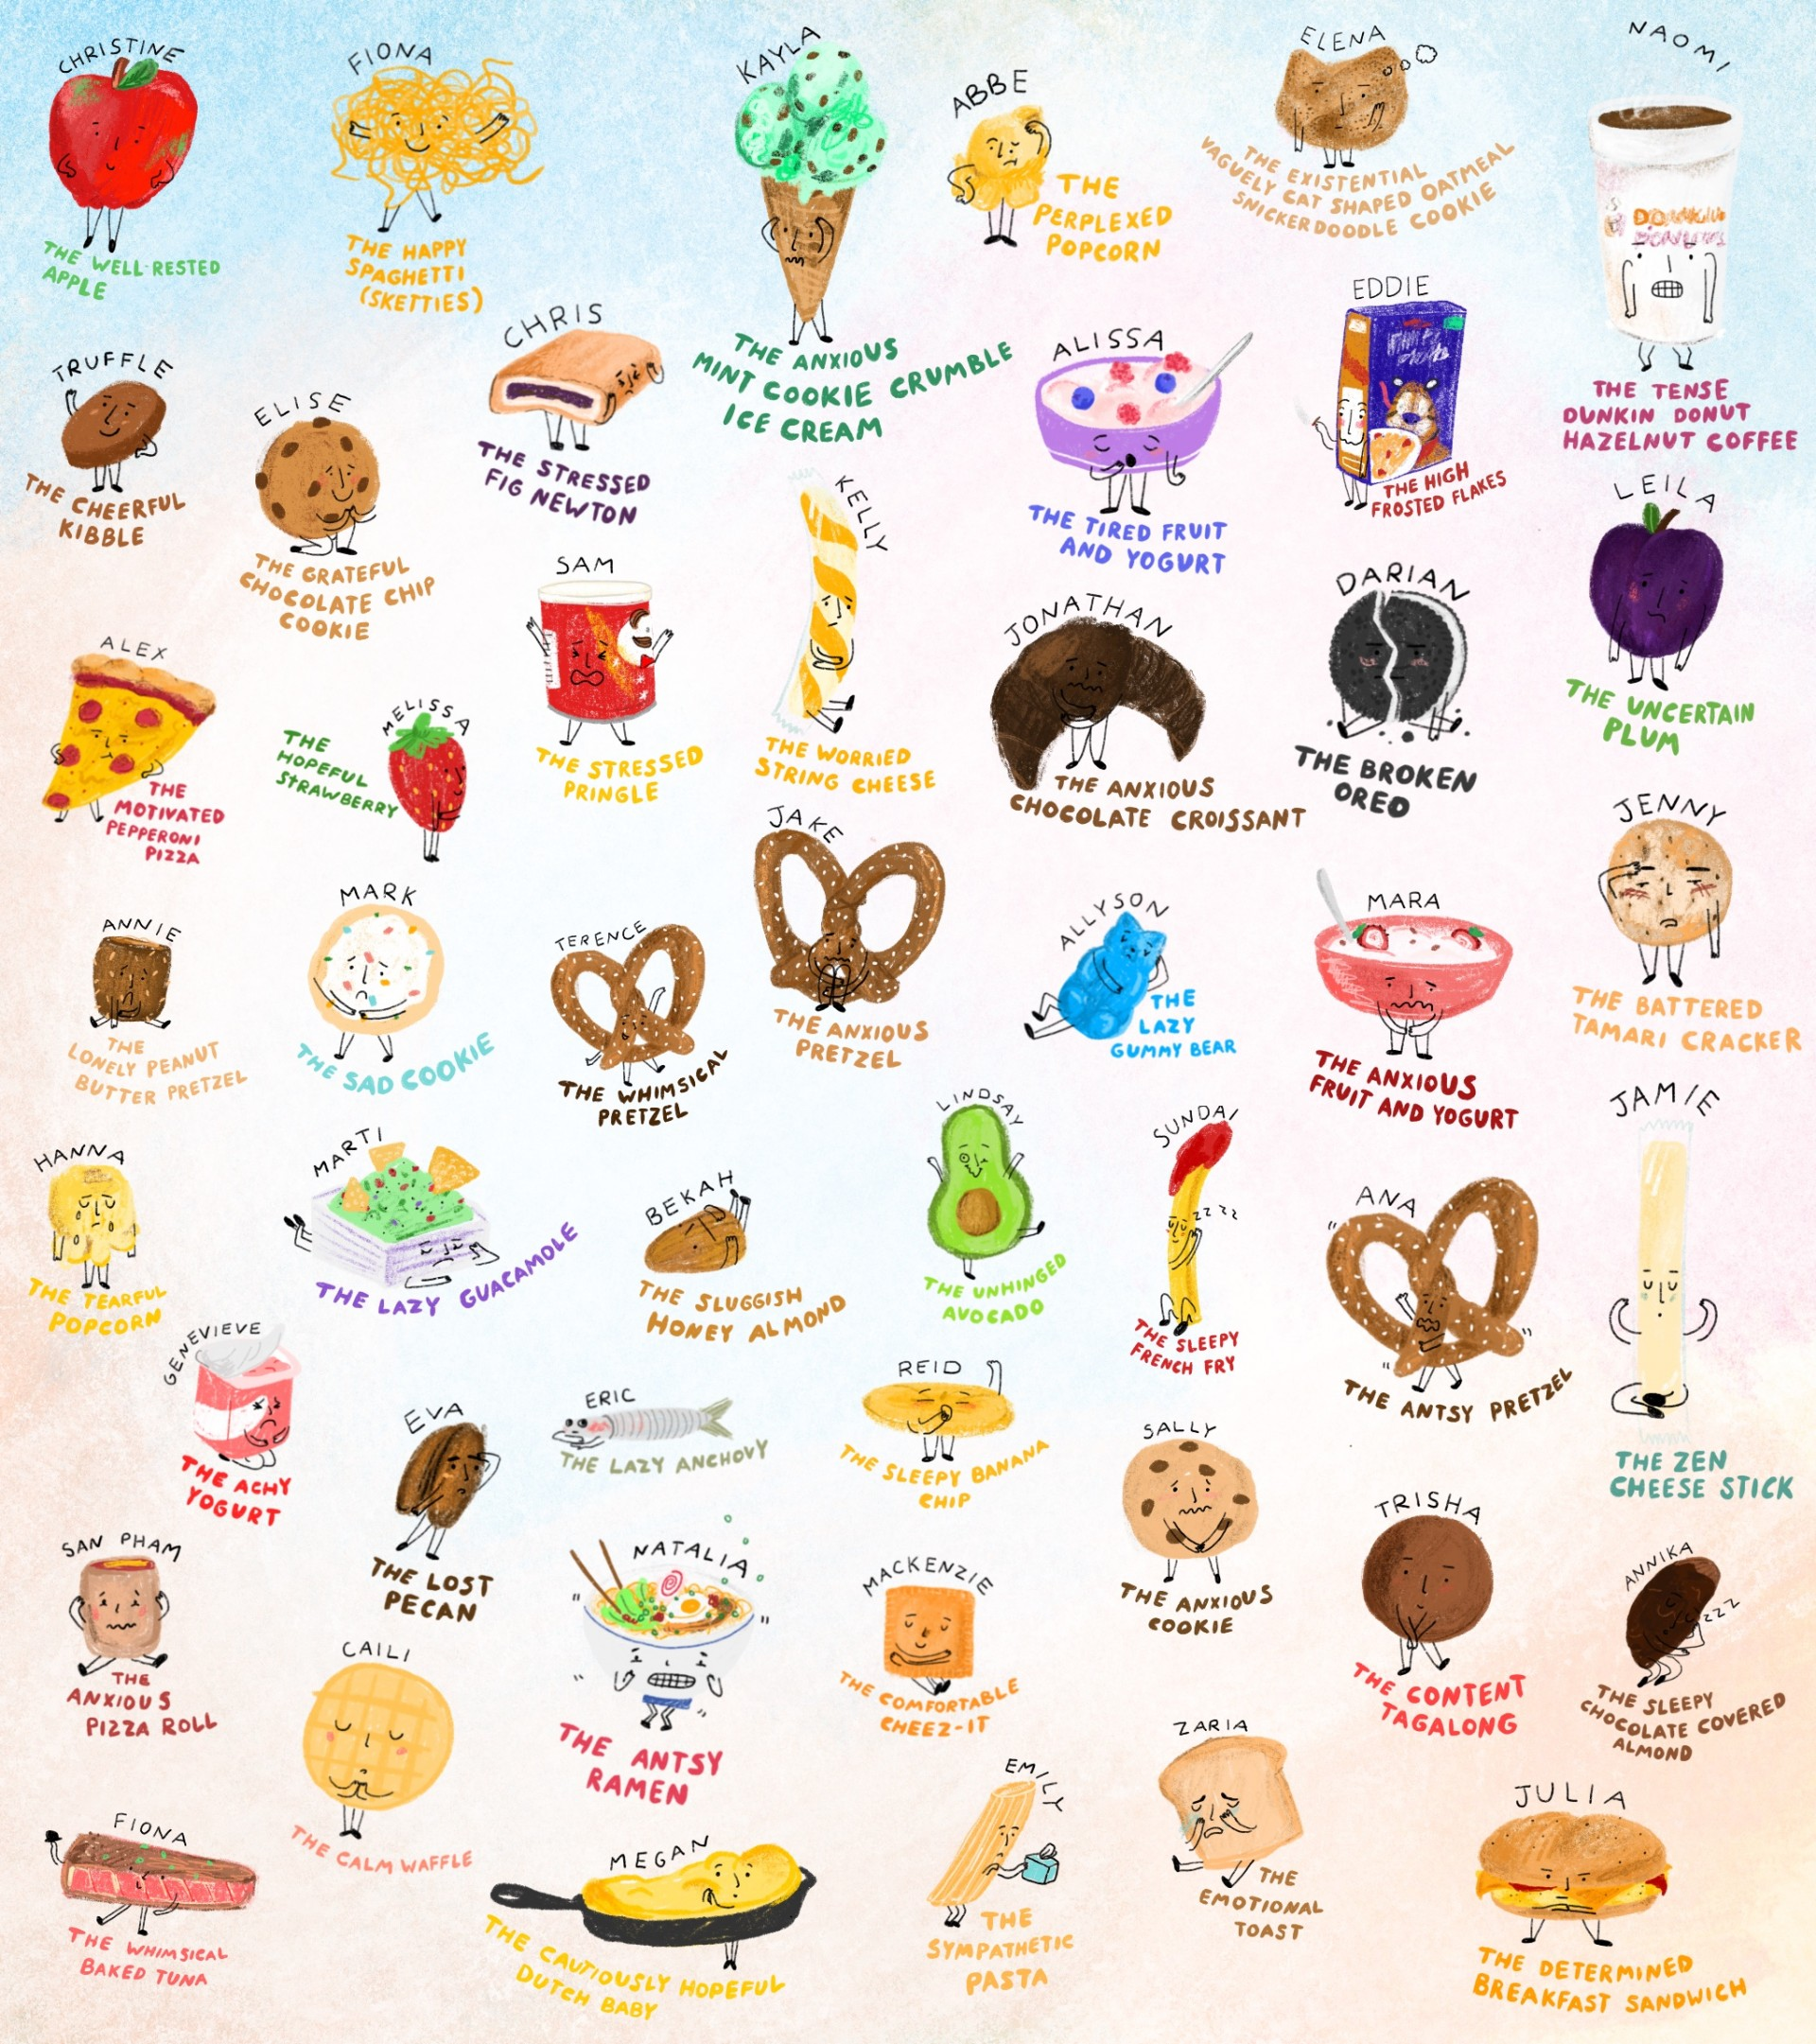 48 small drawings of emotional foods. Each drawing has a name and a description written underneath. White background and illustrations are drawn in color.